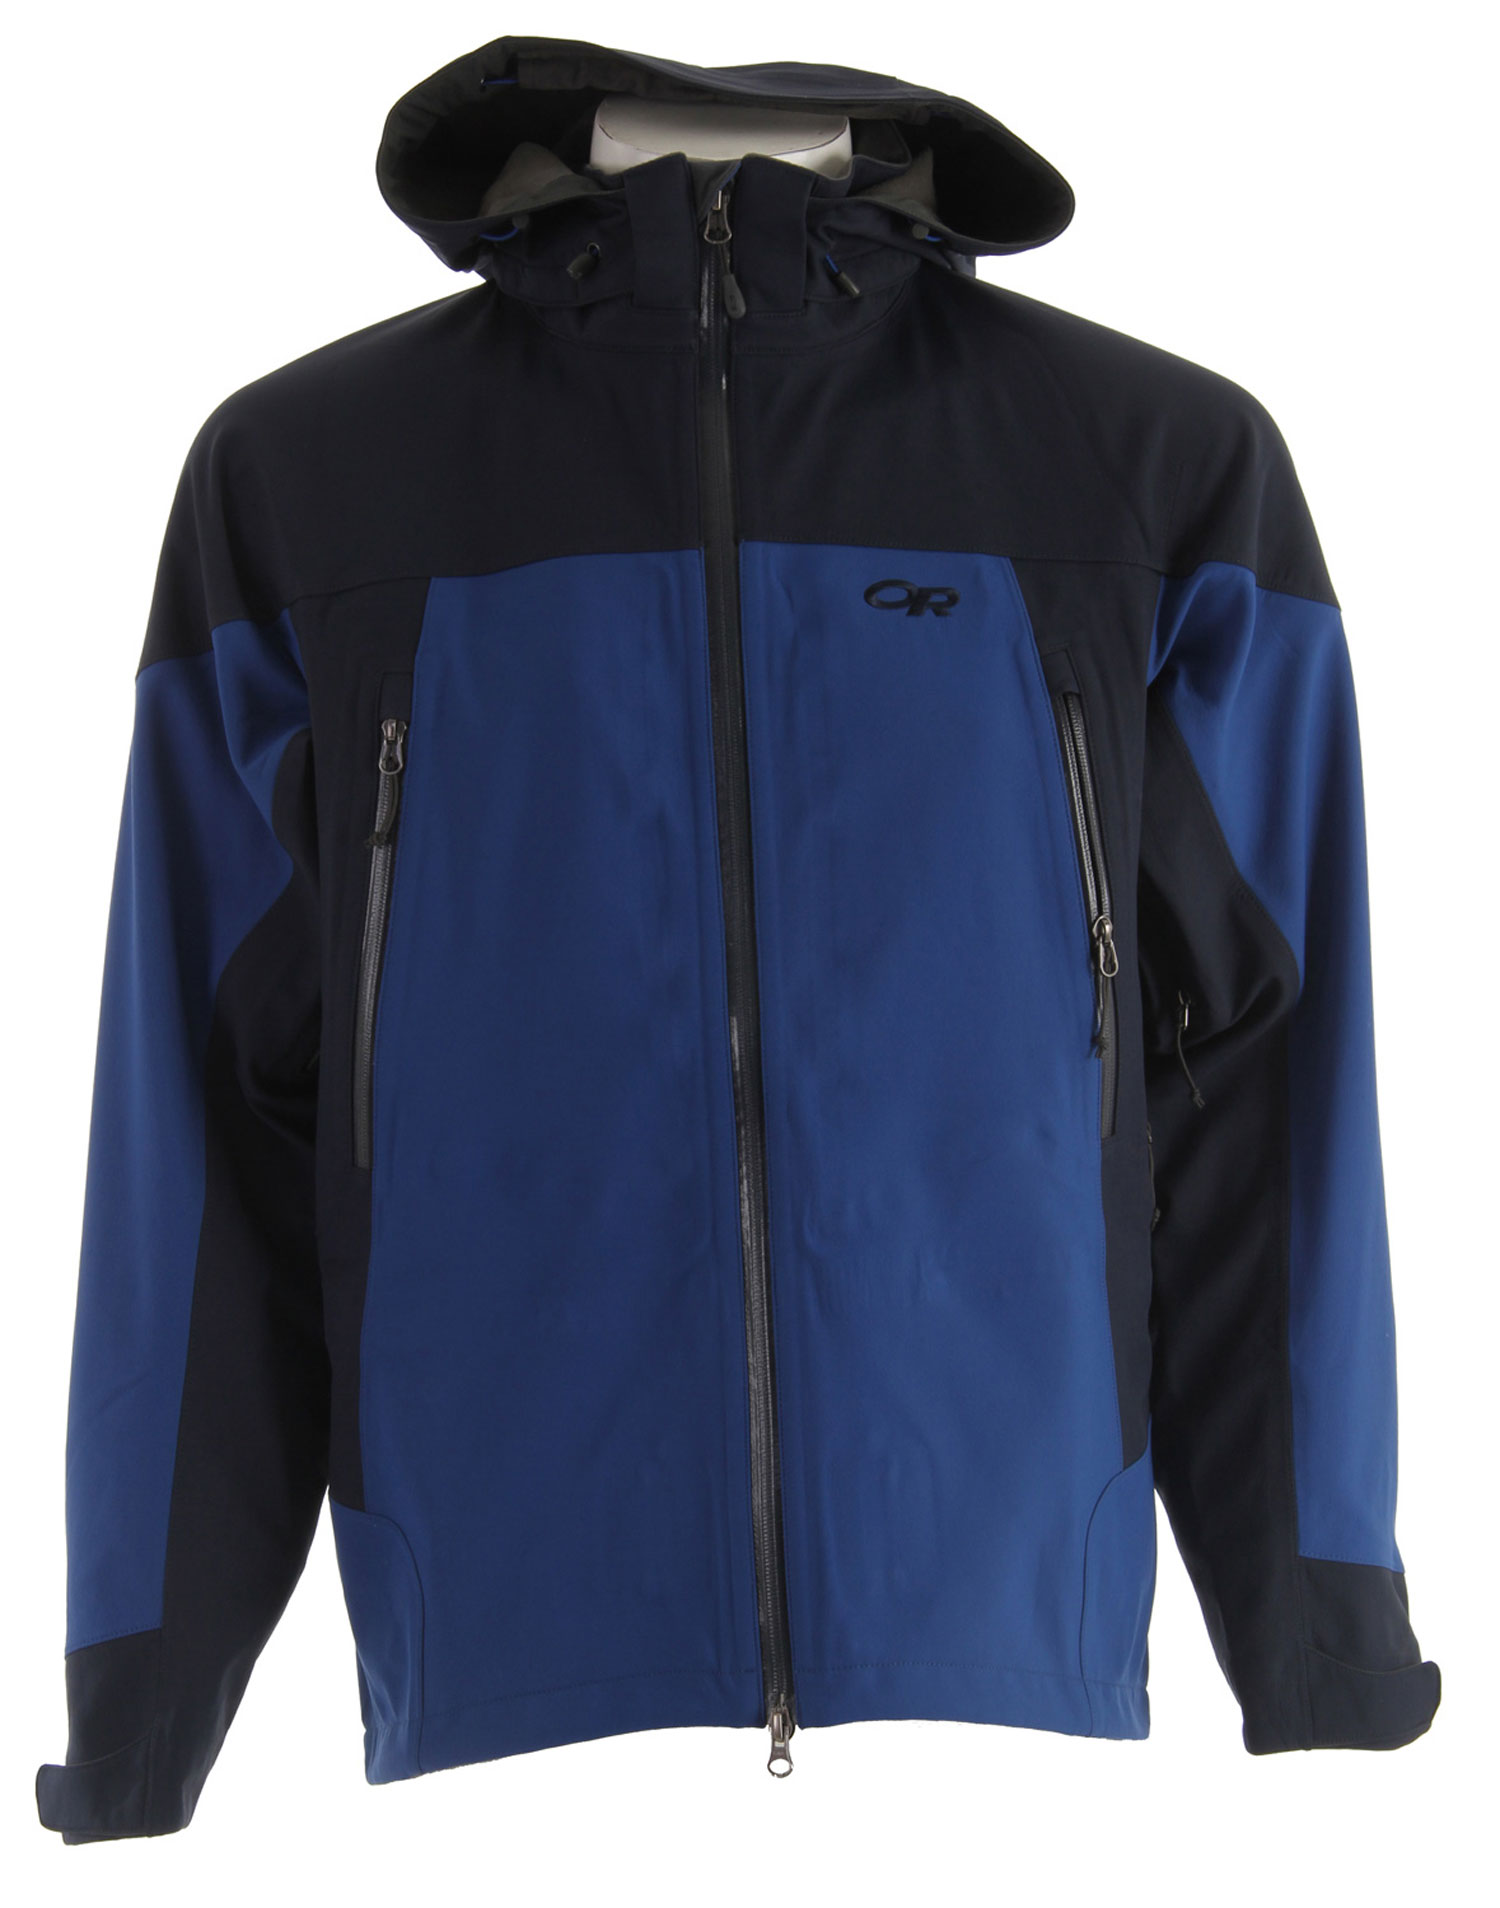 Ski The Outdoor Research Motto Ski Jacket's soft shell warmth and breathability combine for protection and comfort while skiing in deep powder conditions.* Ventia Dry Construction * Fully seam taped waterproof/ breathable Ventia softshell fabric with warm, fleece interior * Water-resistant zippers * Zip-off, fully adjustable hood fits over helmet * Brushed tricot-lined collar * Double-separating front zipper with internal stormflap * Double-sliding pit zippers for ventilation * Zippered internal pocket with media port; two zippered hand pockets * Large, zippered rear stash pocket * Zip-out, mesh powder skirt with gripper elastic * Hook/ loop cuff closures * Dual drawcord hem adjustments - $151.95